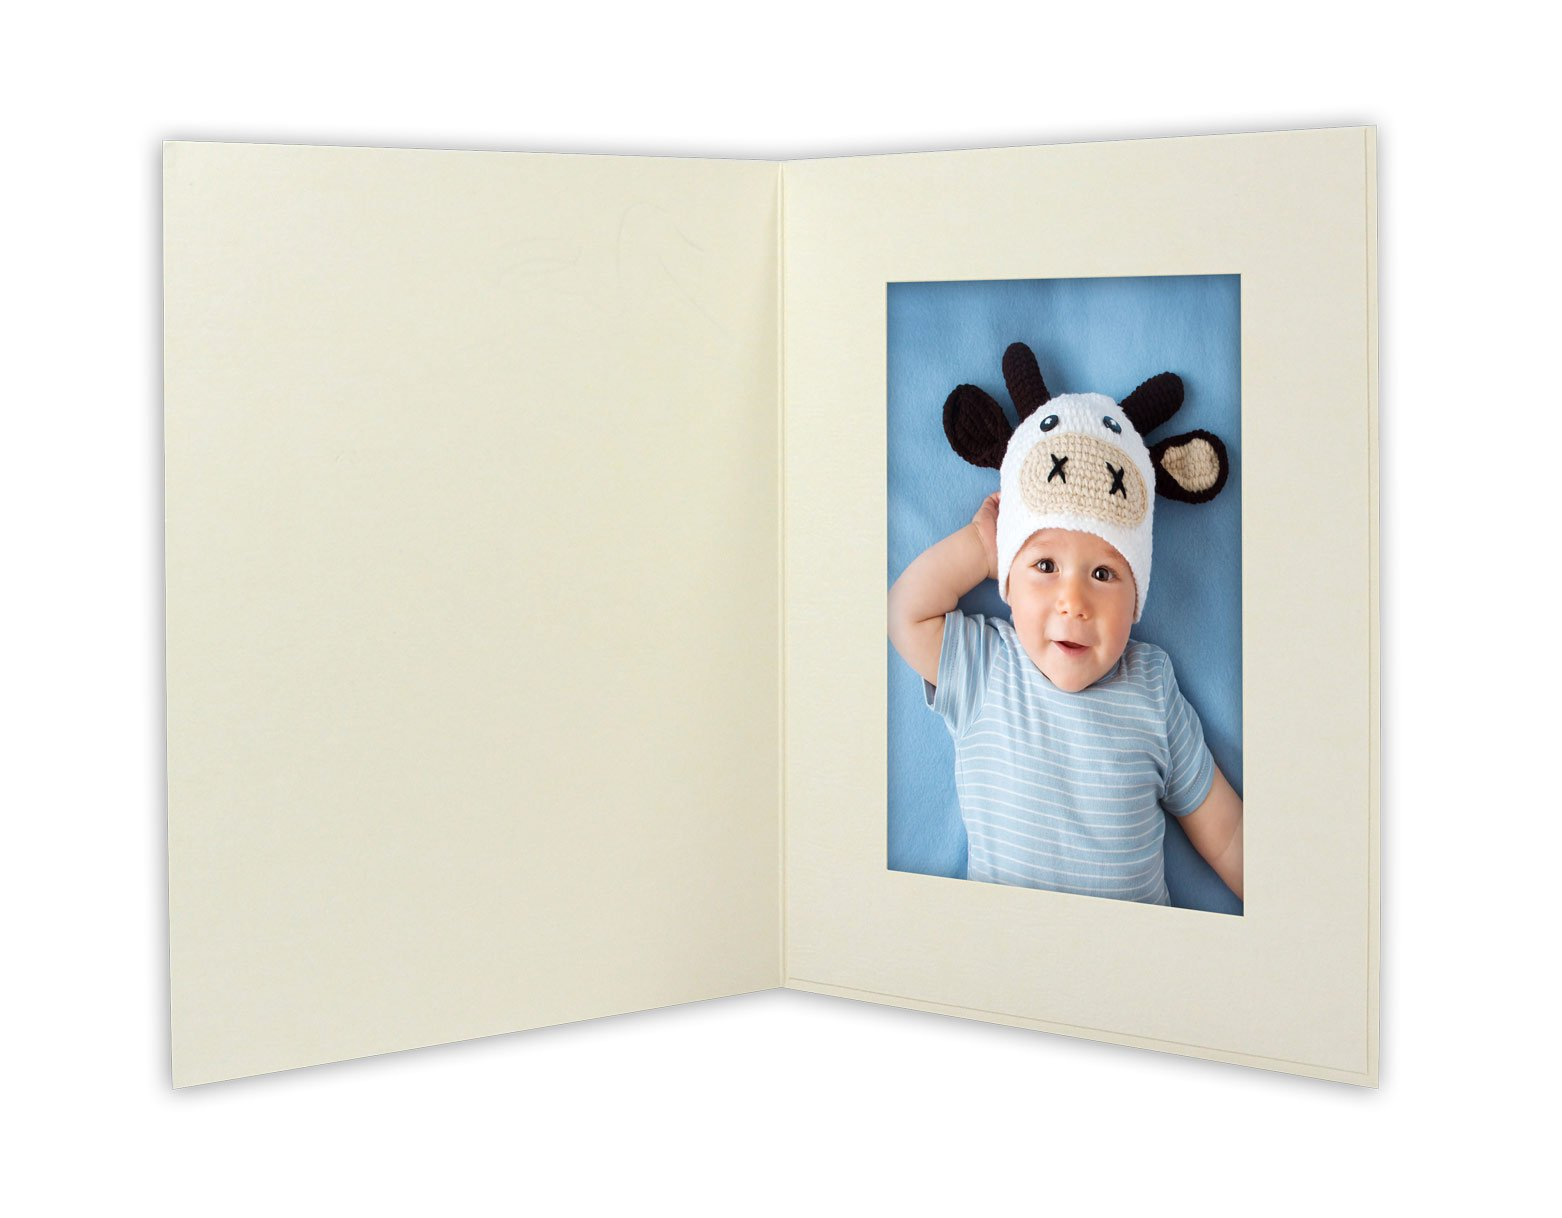 Golden State Art, ANGEL PRINT Cardboard Photo Folder For a 4x6 Photo (Pack of 50) GS007 Ivory Color